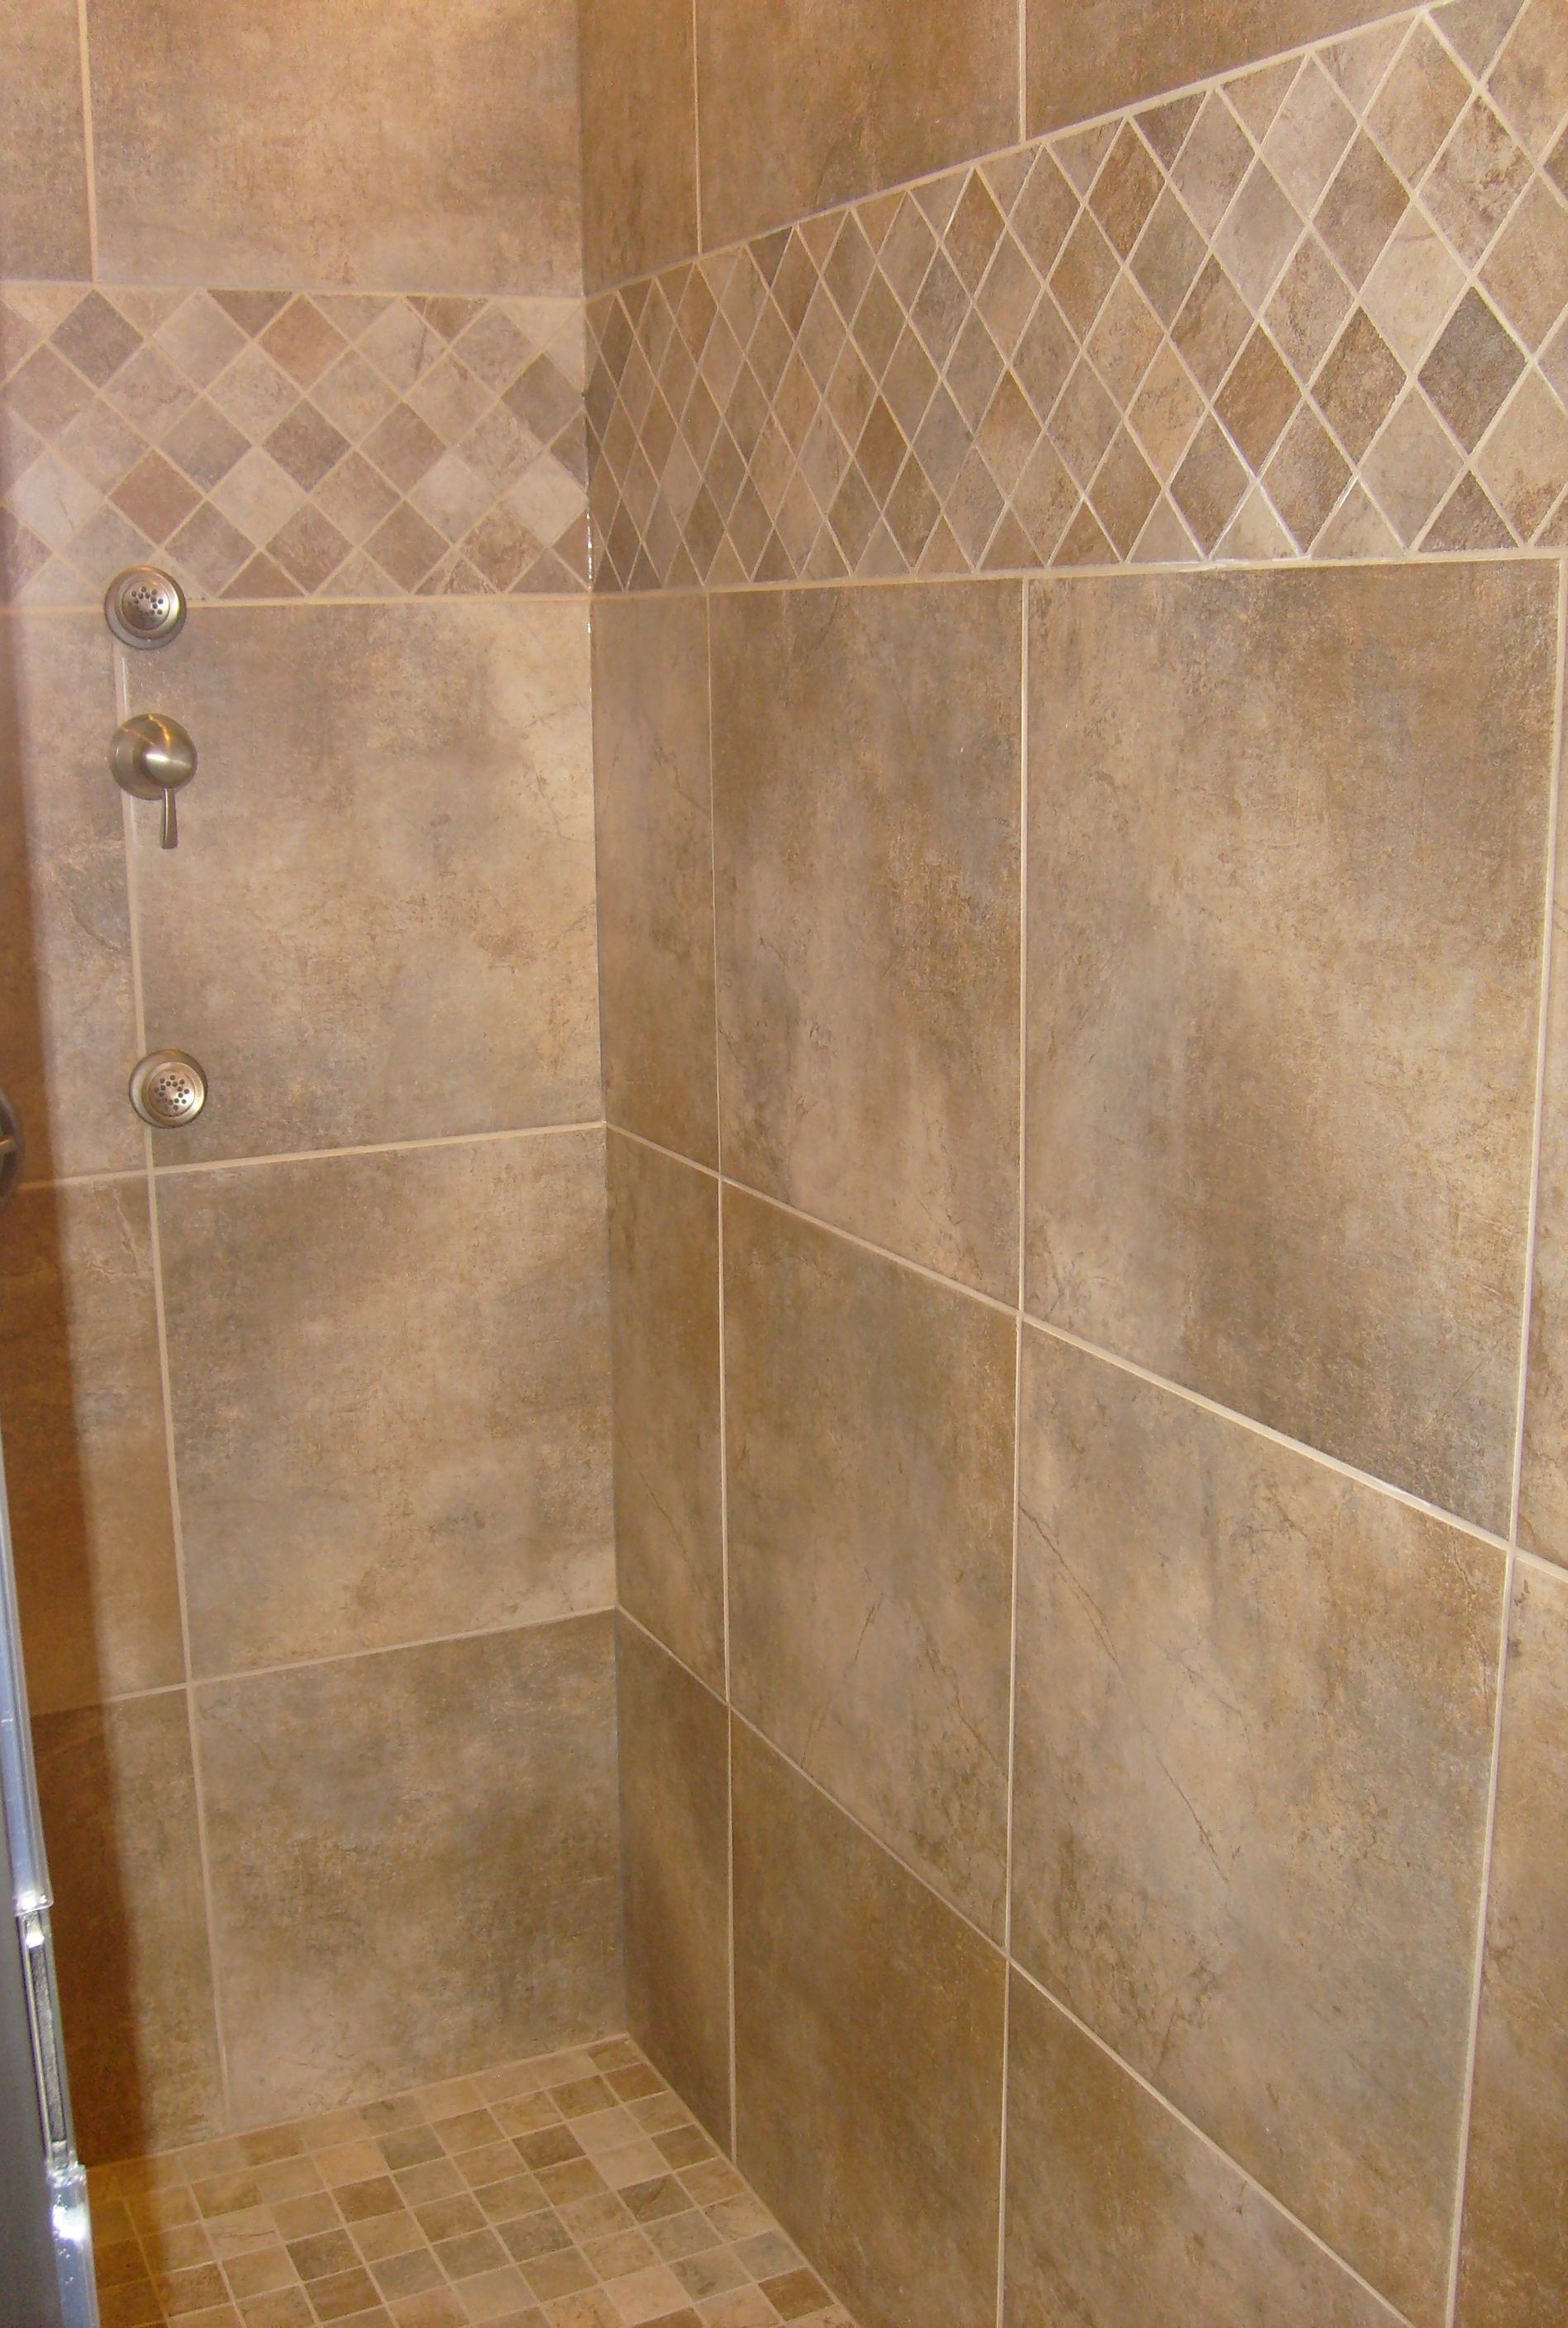 Tile Shower- tile pattern | Time to update the house | Pinterest ...